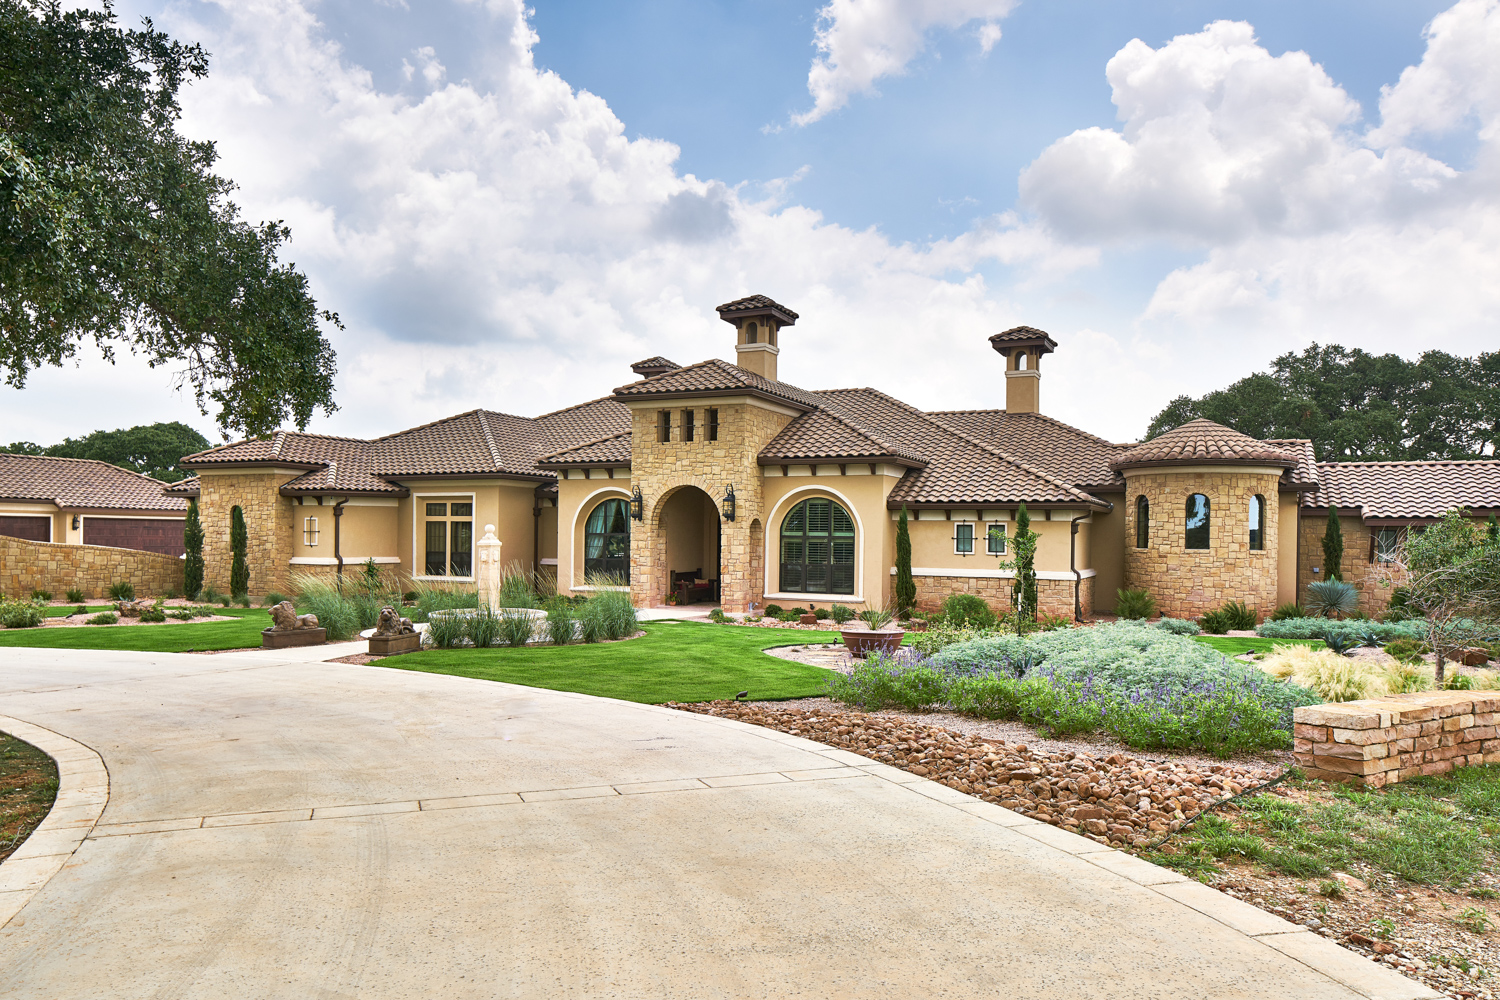 Nature's Way: Nature's Way New Braunfels Custom Home Ranches of Comal Keith Wing Custom Home Builders Matthew Niemann Photography